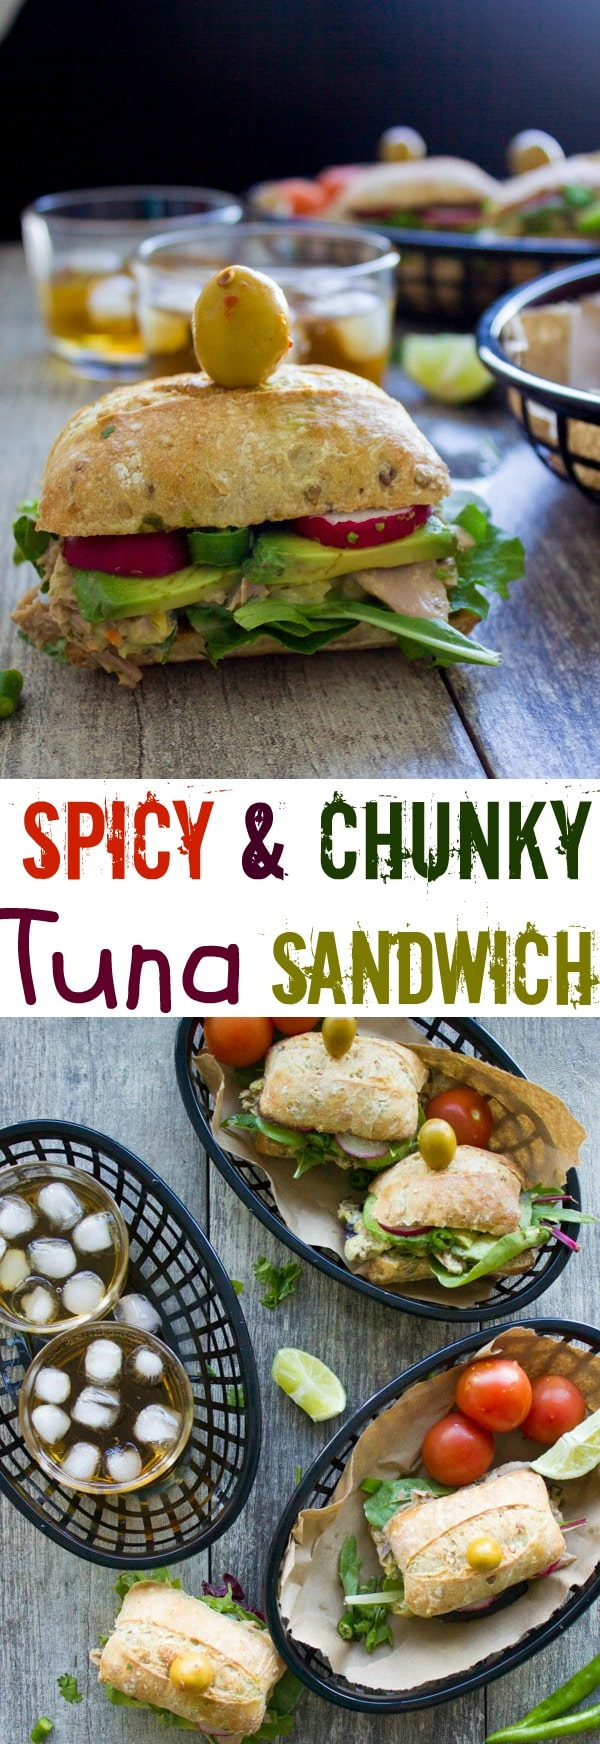 Spicy Chunky Tuna Sandwich| Tired of soggy tuna salad sandwiches? My Ultimate Tuna Sandwich recipe with a healthy no-mayo tuna salad and easy instructions for preventing sogginess might change your whole view on this classic lunch sandwich! #sandwich, #easy, #lunch, #tuna, #healthy, #mealprep, #tunasalad